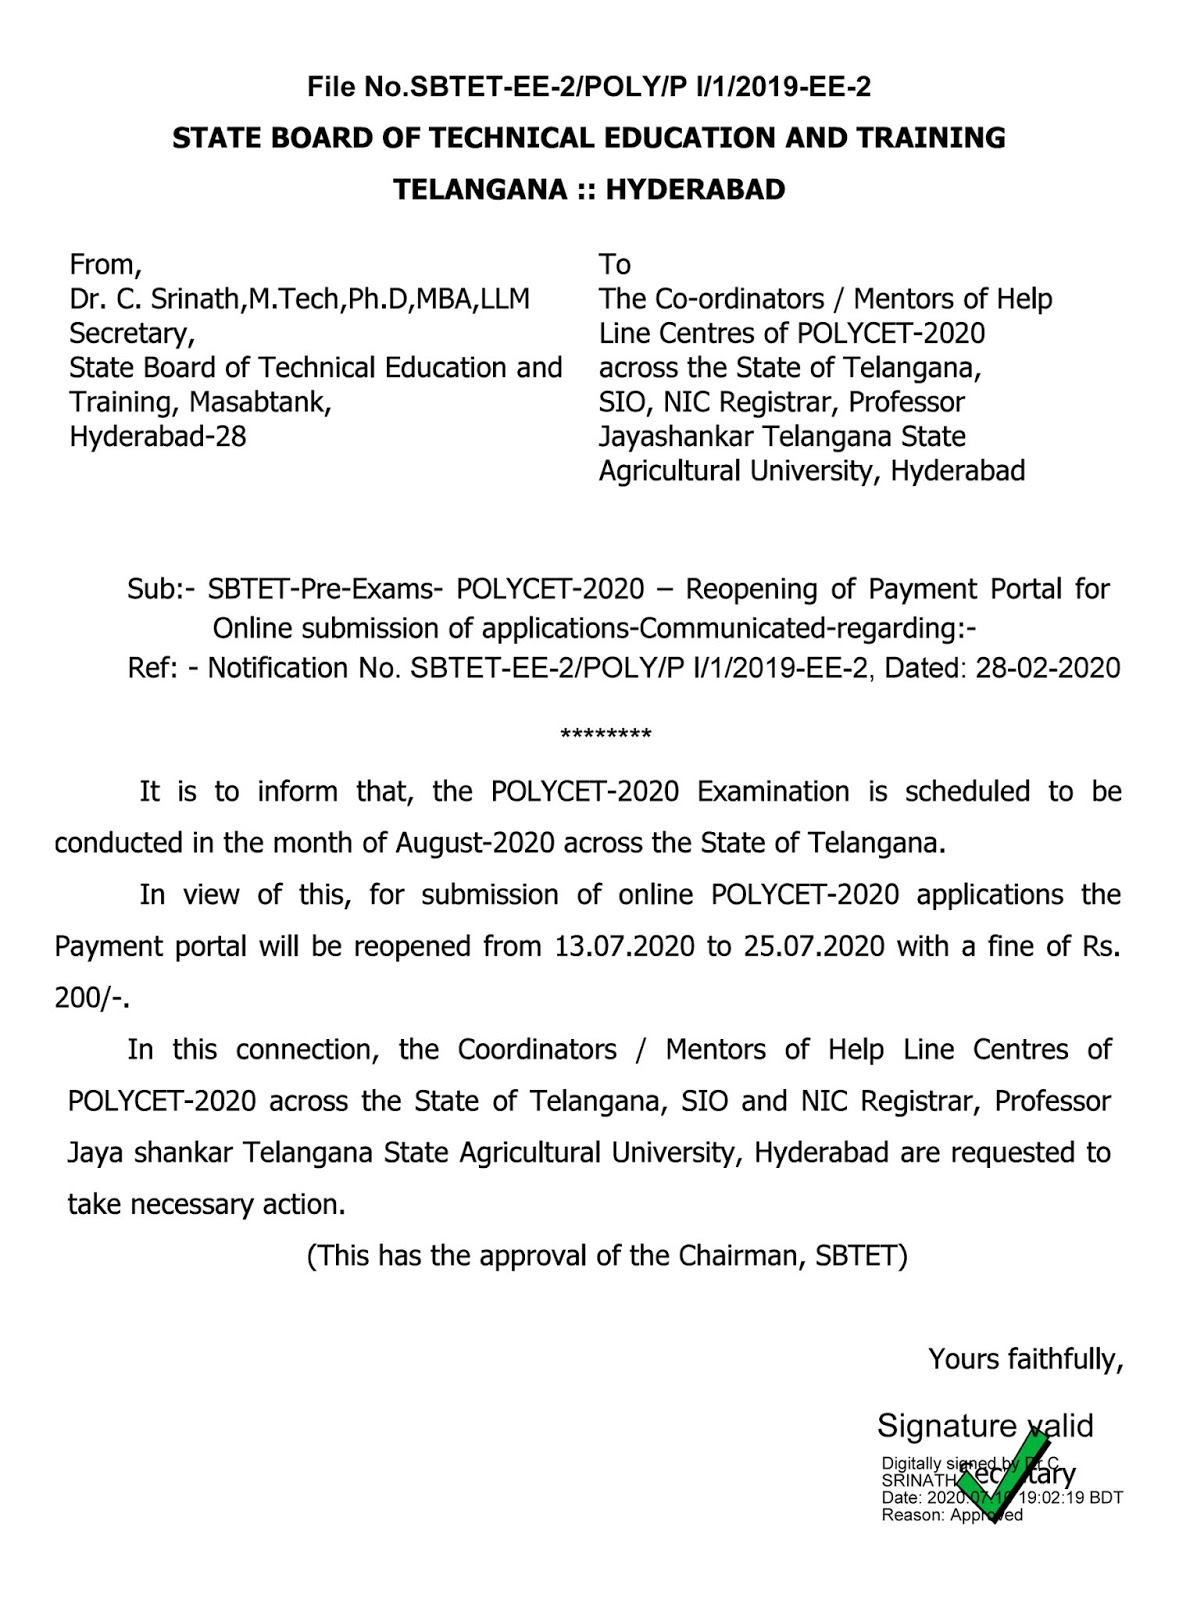 TS Polycet 2020 Reopening of Payment Portal Applications the payment Portal